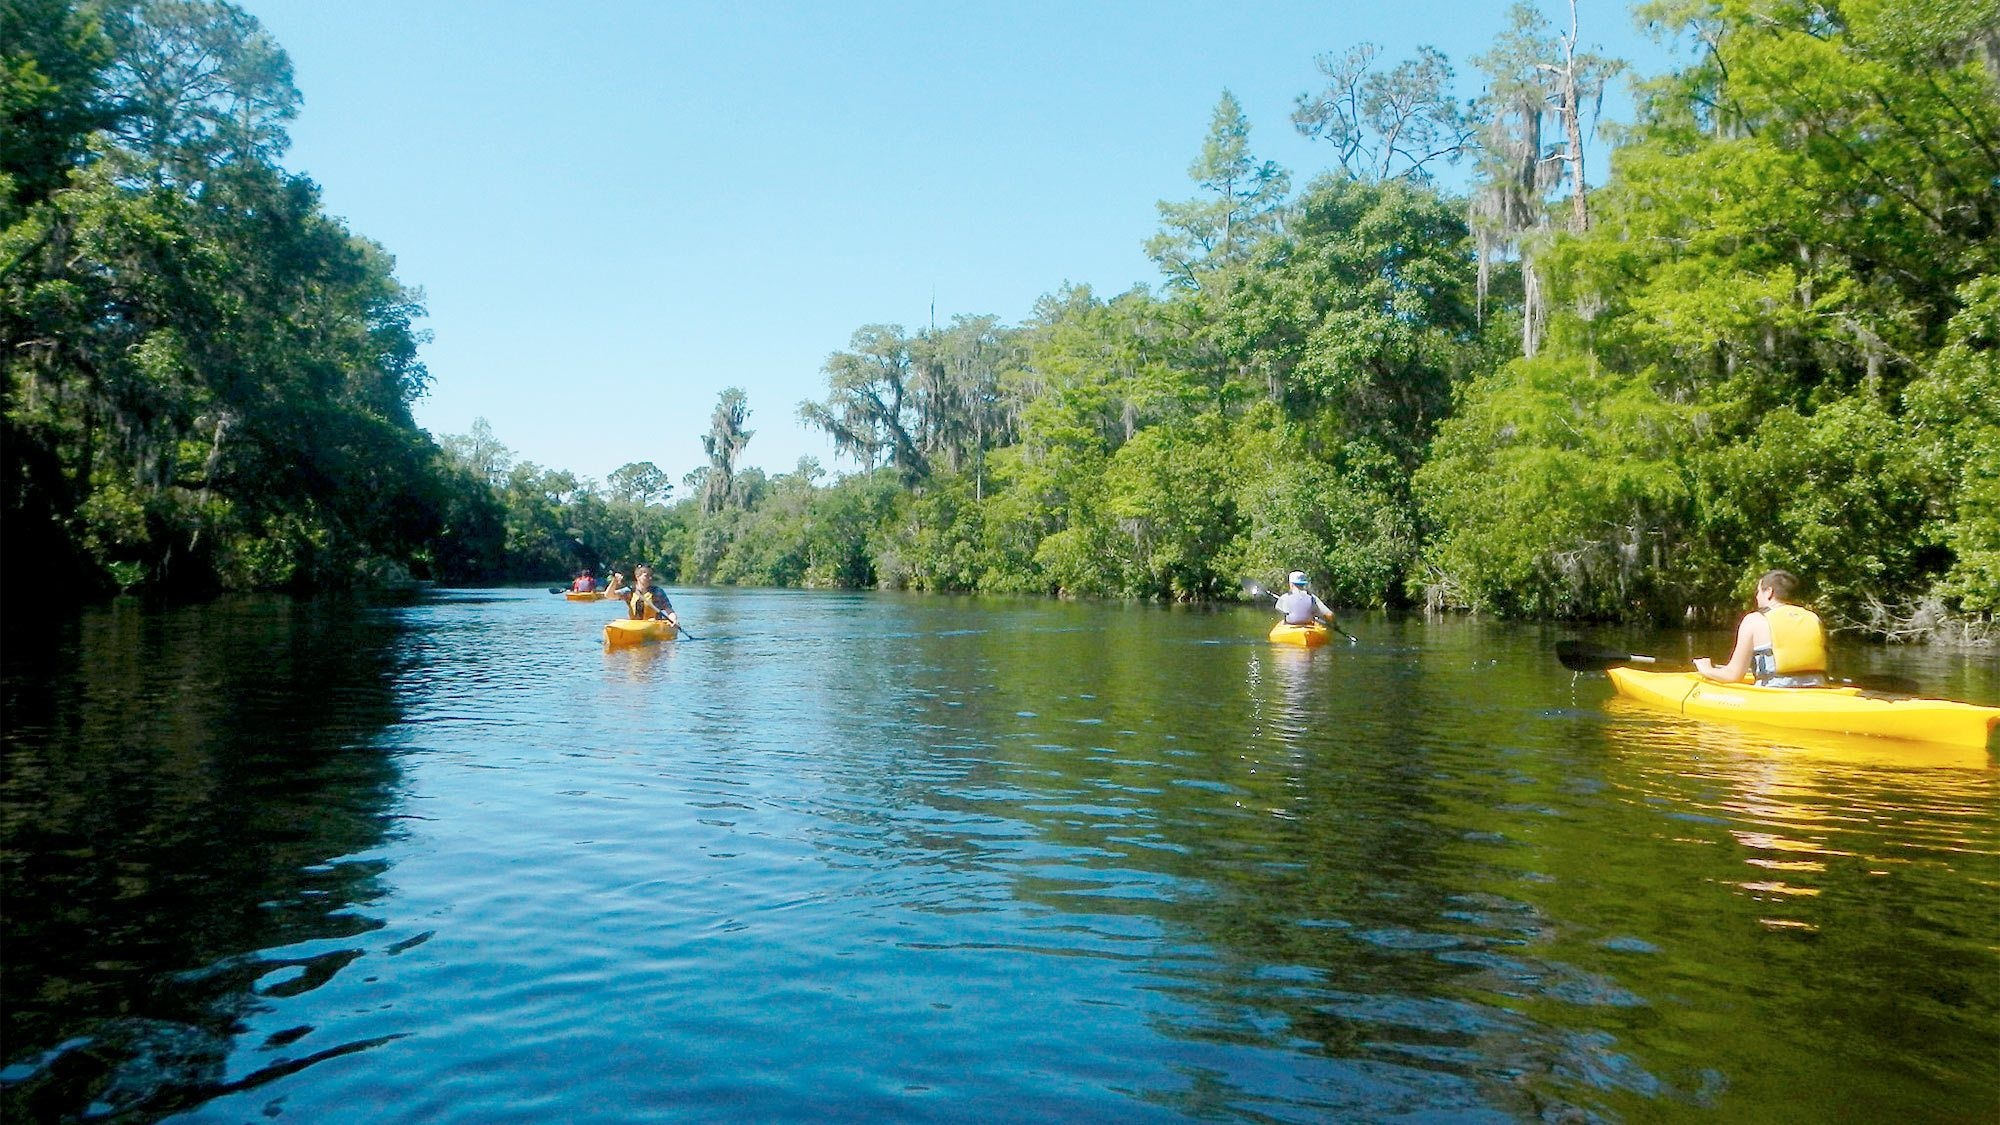 View of the Kayak Adventure Tour in Orlando